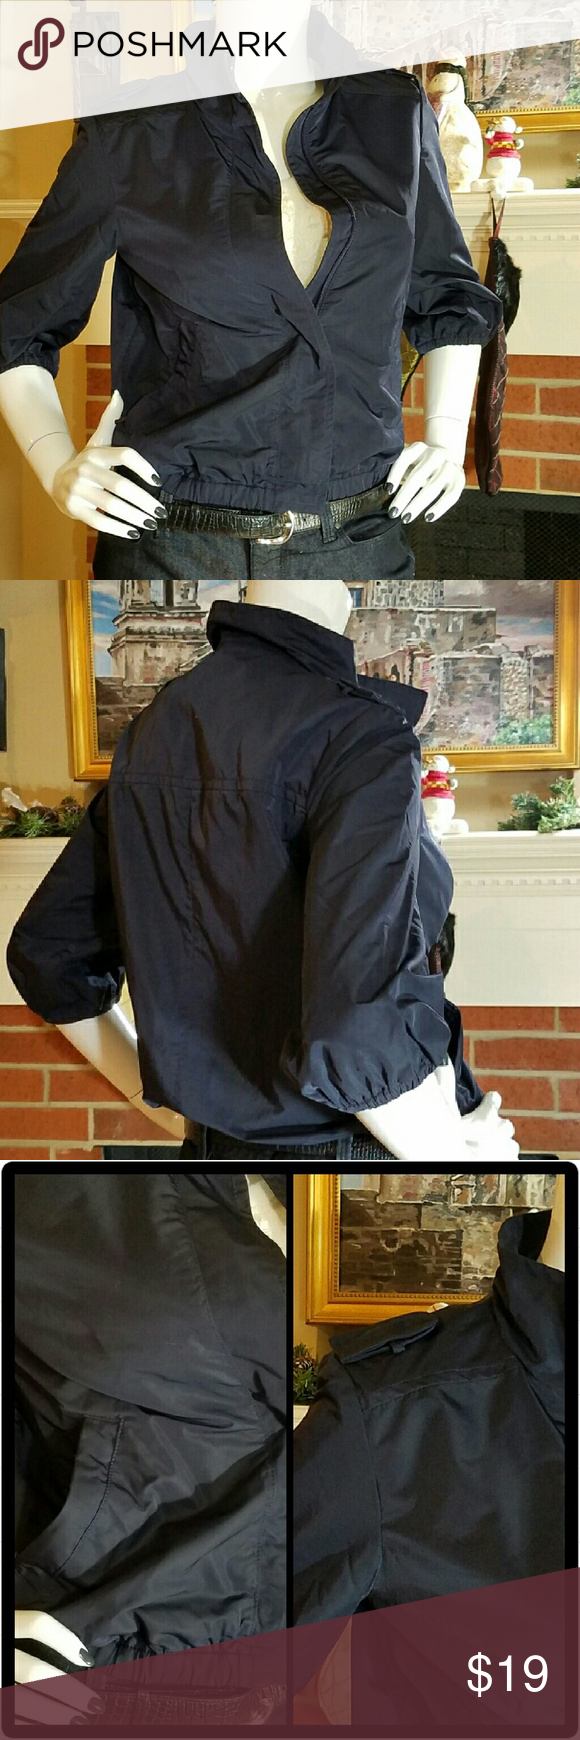 BR Jacket Banana Republic cropped sleeve zip jacket. 2 front pockets with zip closure. 2 decorative shoulder epaulets. Elastic waistband. Fully lined. Looks great with workout clothes or jeans. Perfect lightweight jacket. Excellent condition. Banana Republic Jackets & Coats